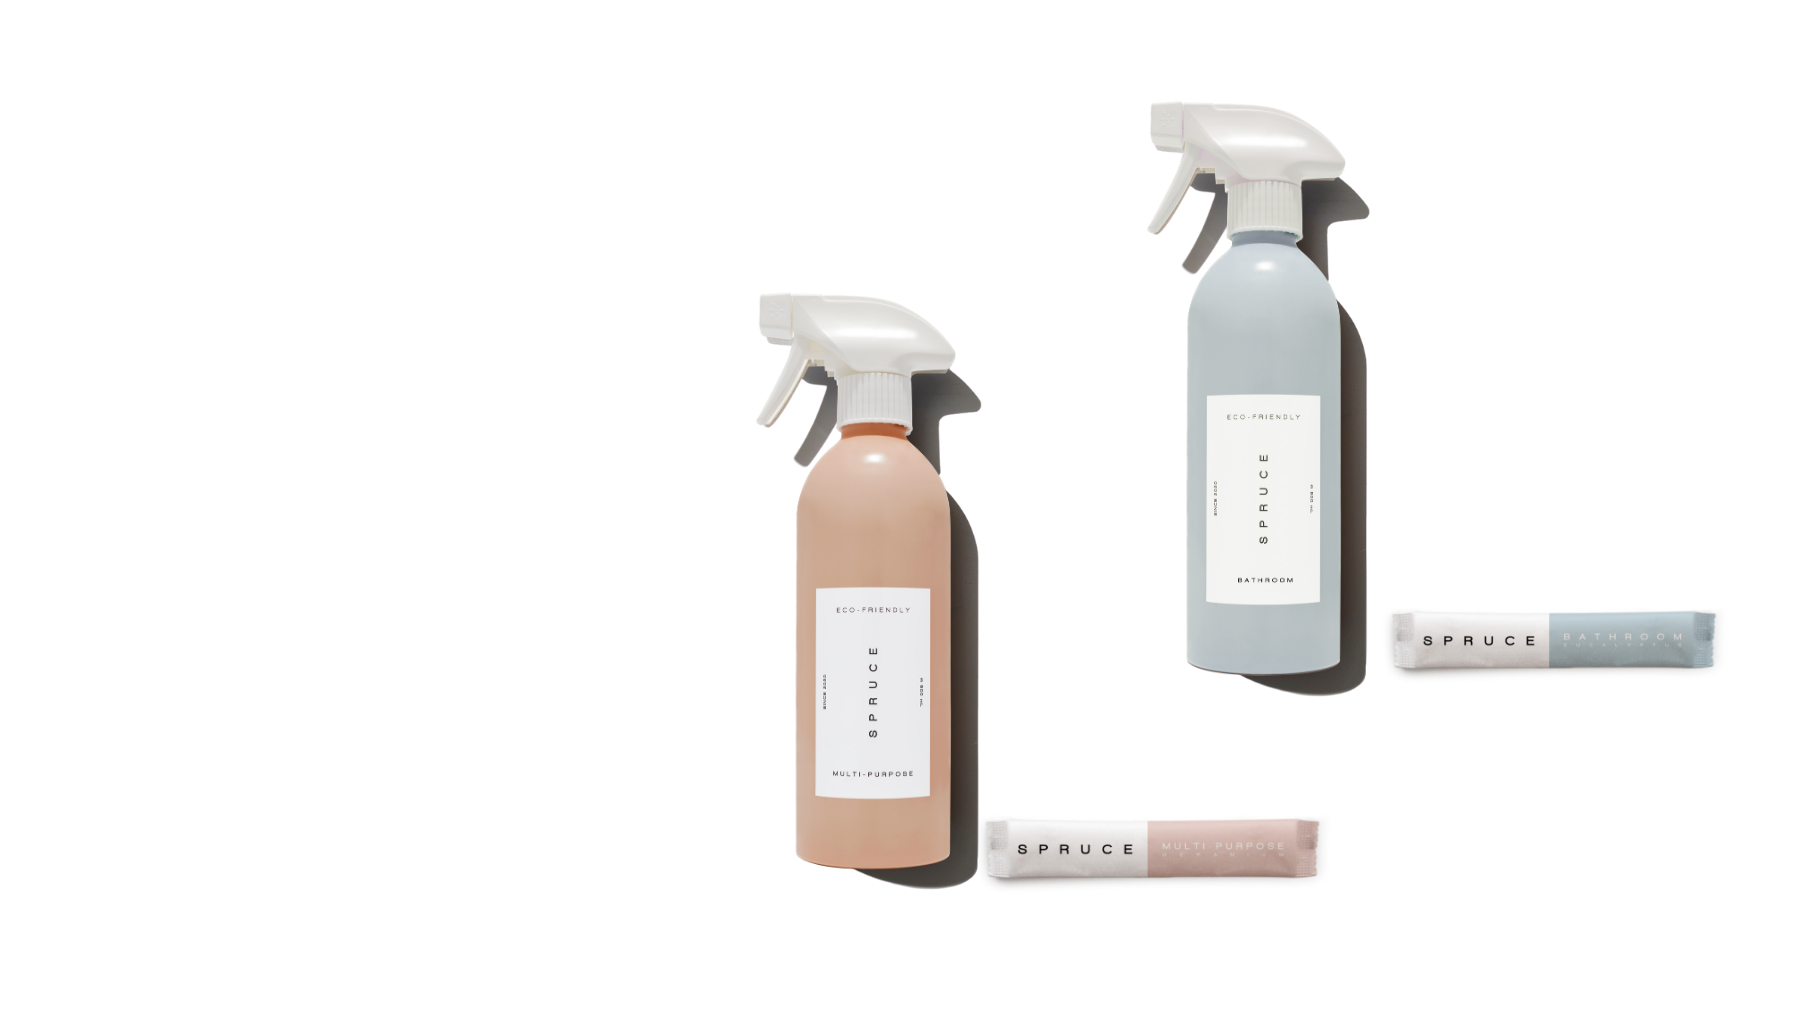 SPRUCE refillable cleaning products with plastic-free refill sachets and refillable starter kit, multipurpose kitchen cleaner x Dezeen Awards Sustainable Design